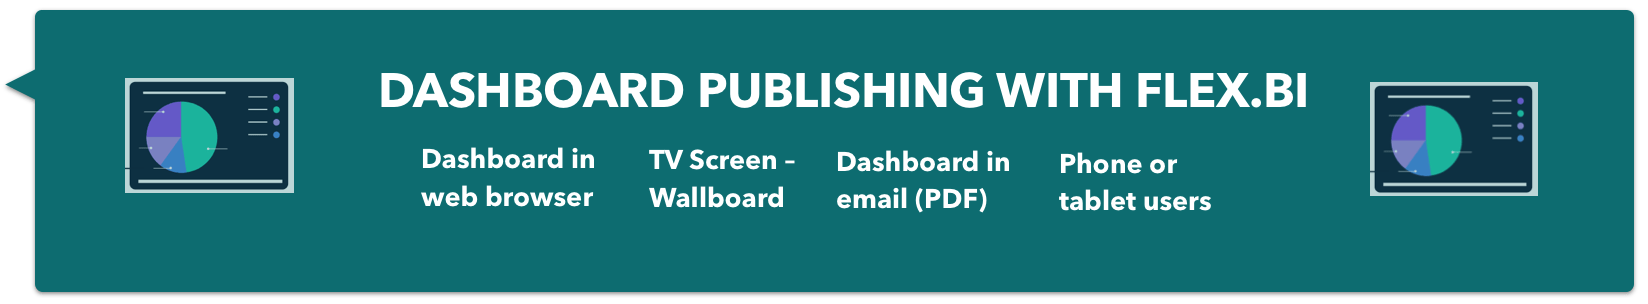 Dashboard Publishing with flex.bi